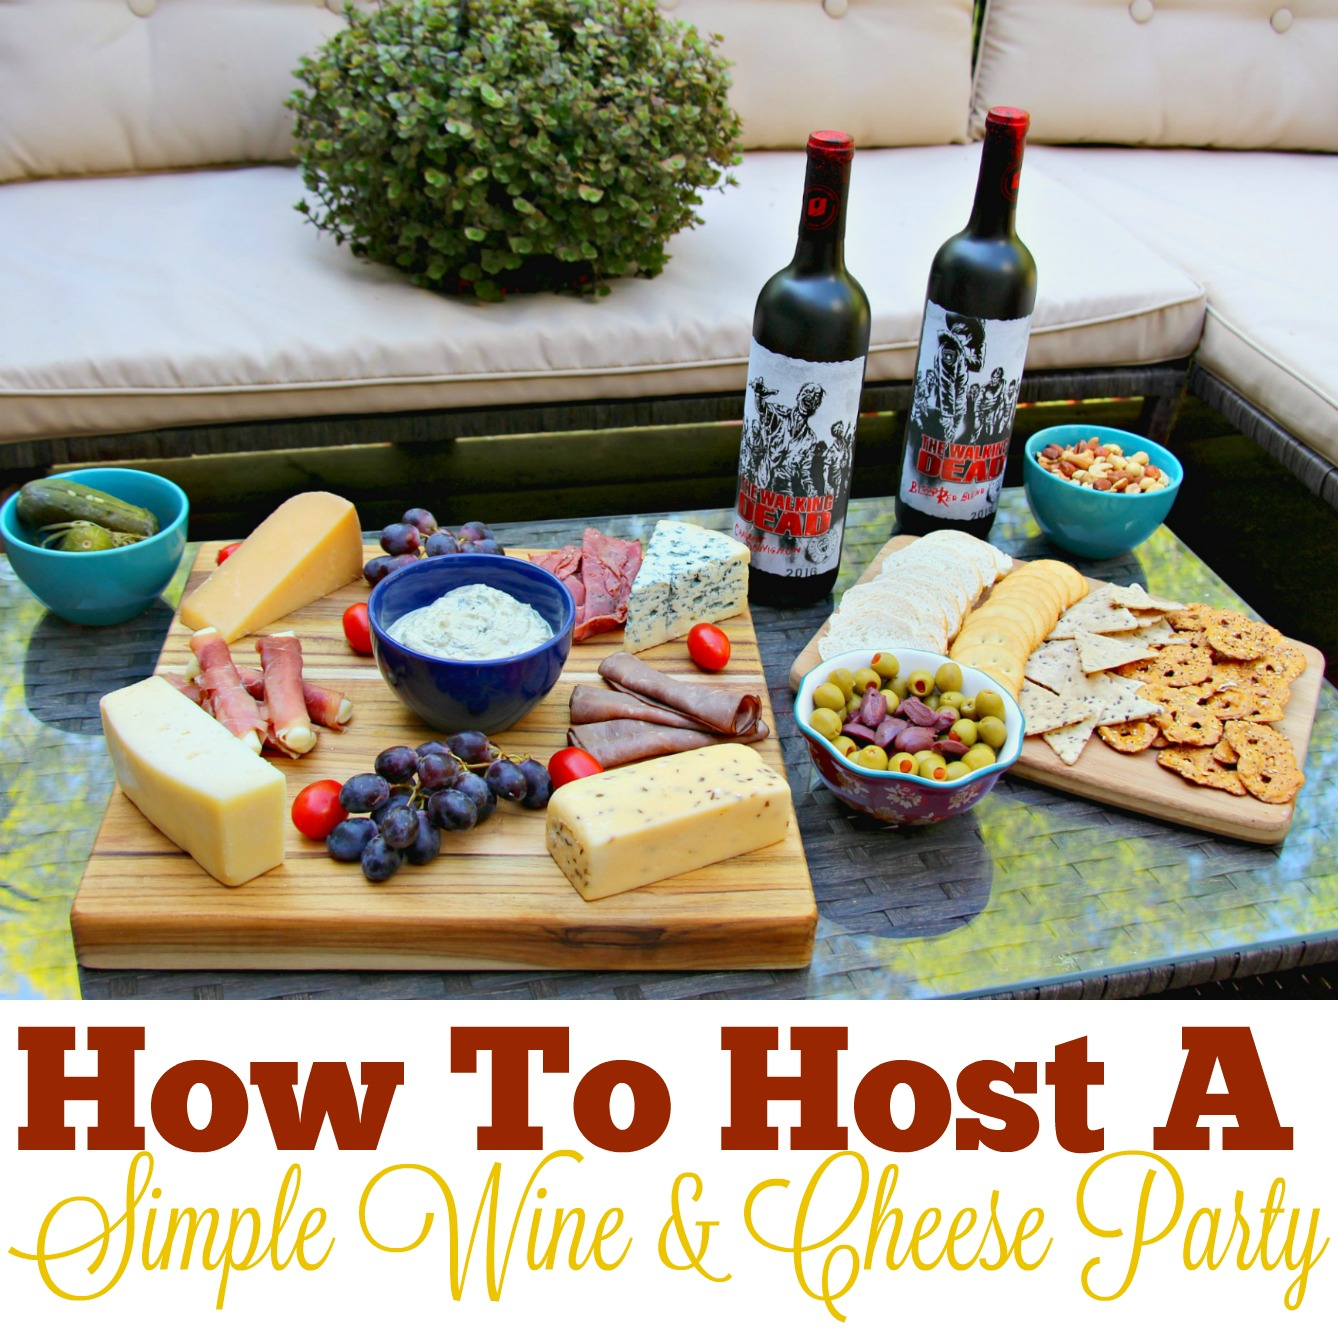 How To Host A Simple Wine & Cheese Party